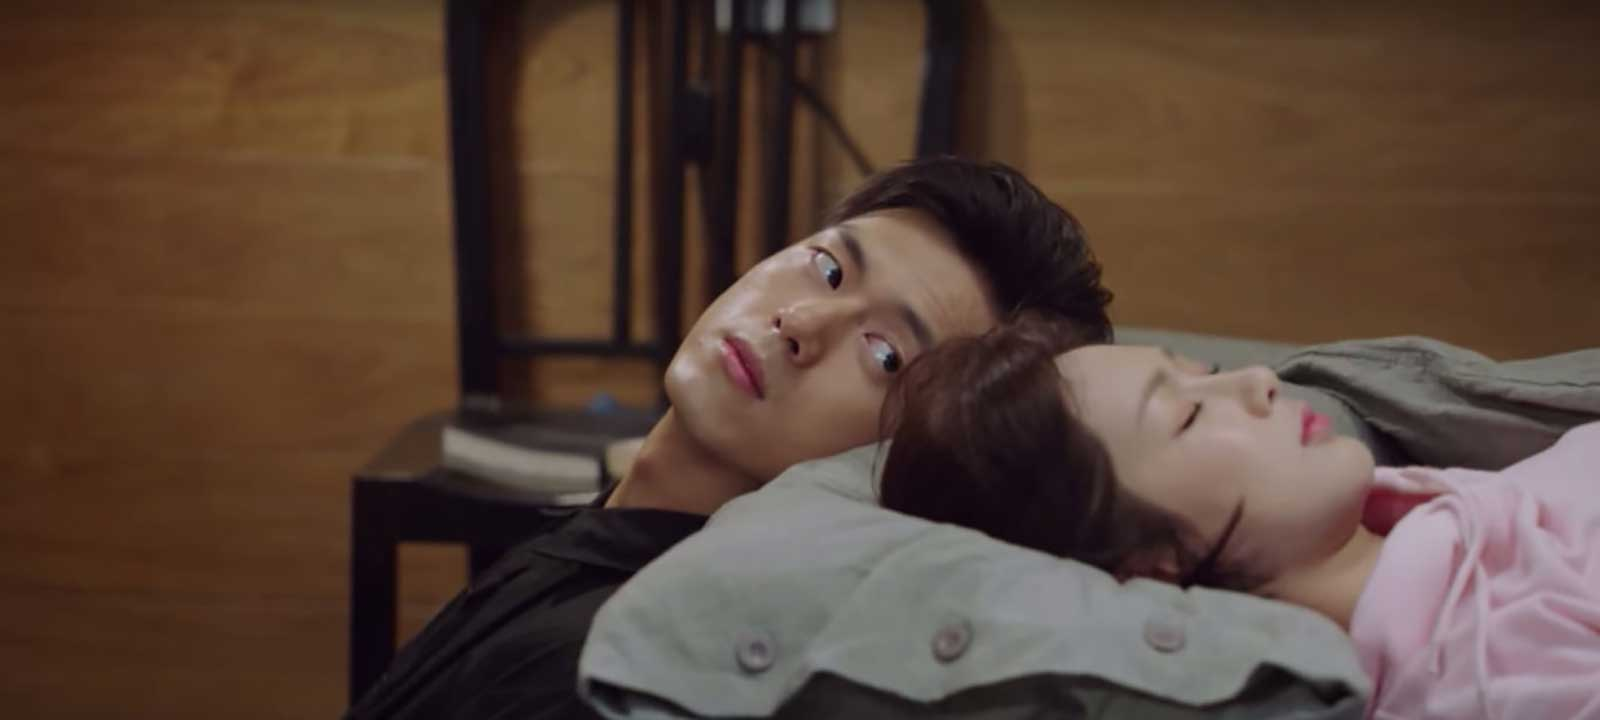 If you've been diving into C-dramas, there's no way you haven't heard of 'Go Go Squid!' You really need to check it out if you haven't watched it yet.